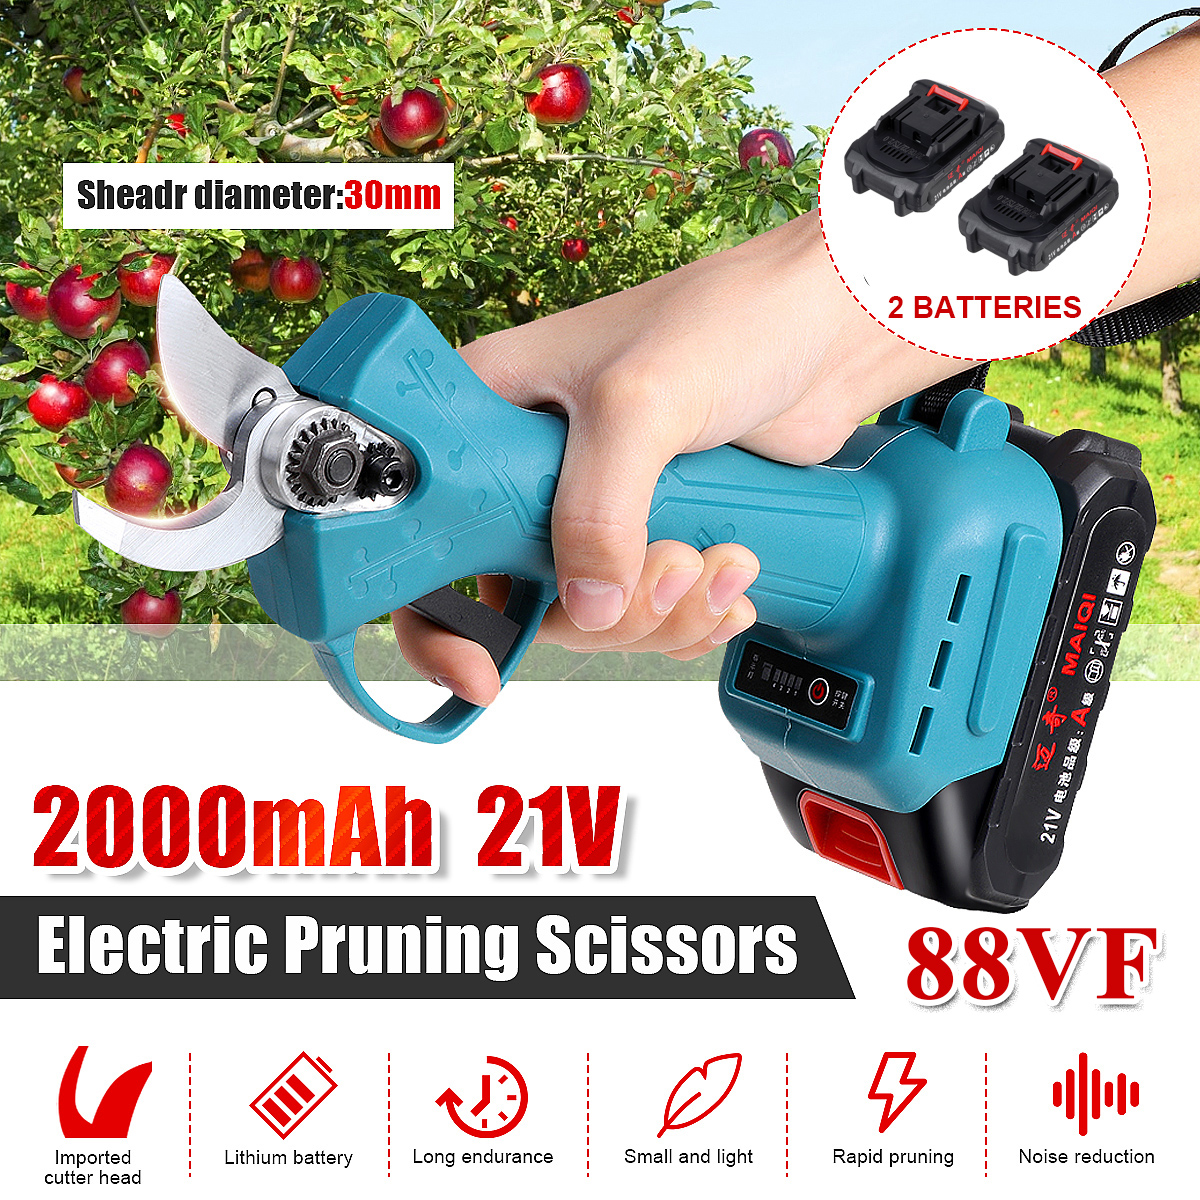 21V 88VF Cordless Rechargeable Electric Pruning Shear Scissors Branch Cutter Secateur Garden Pruner with 2 Lithium-ion Battery